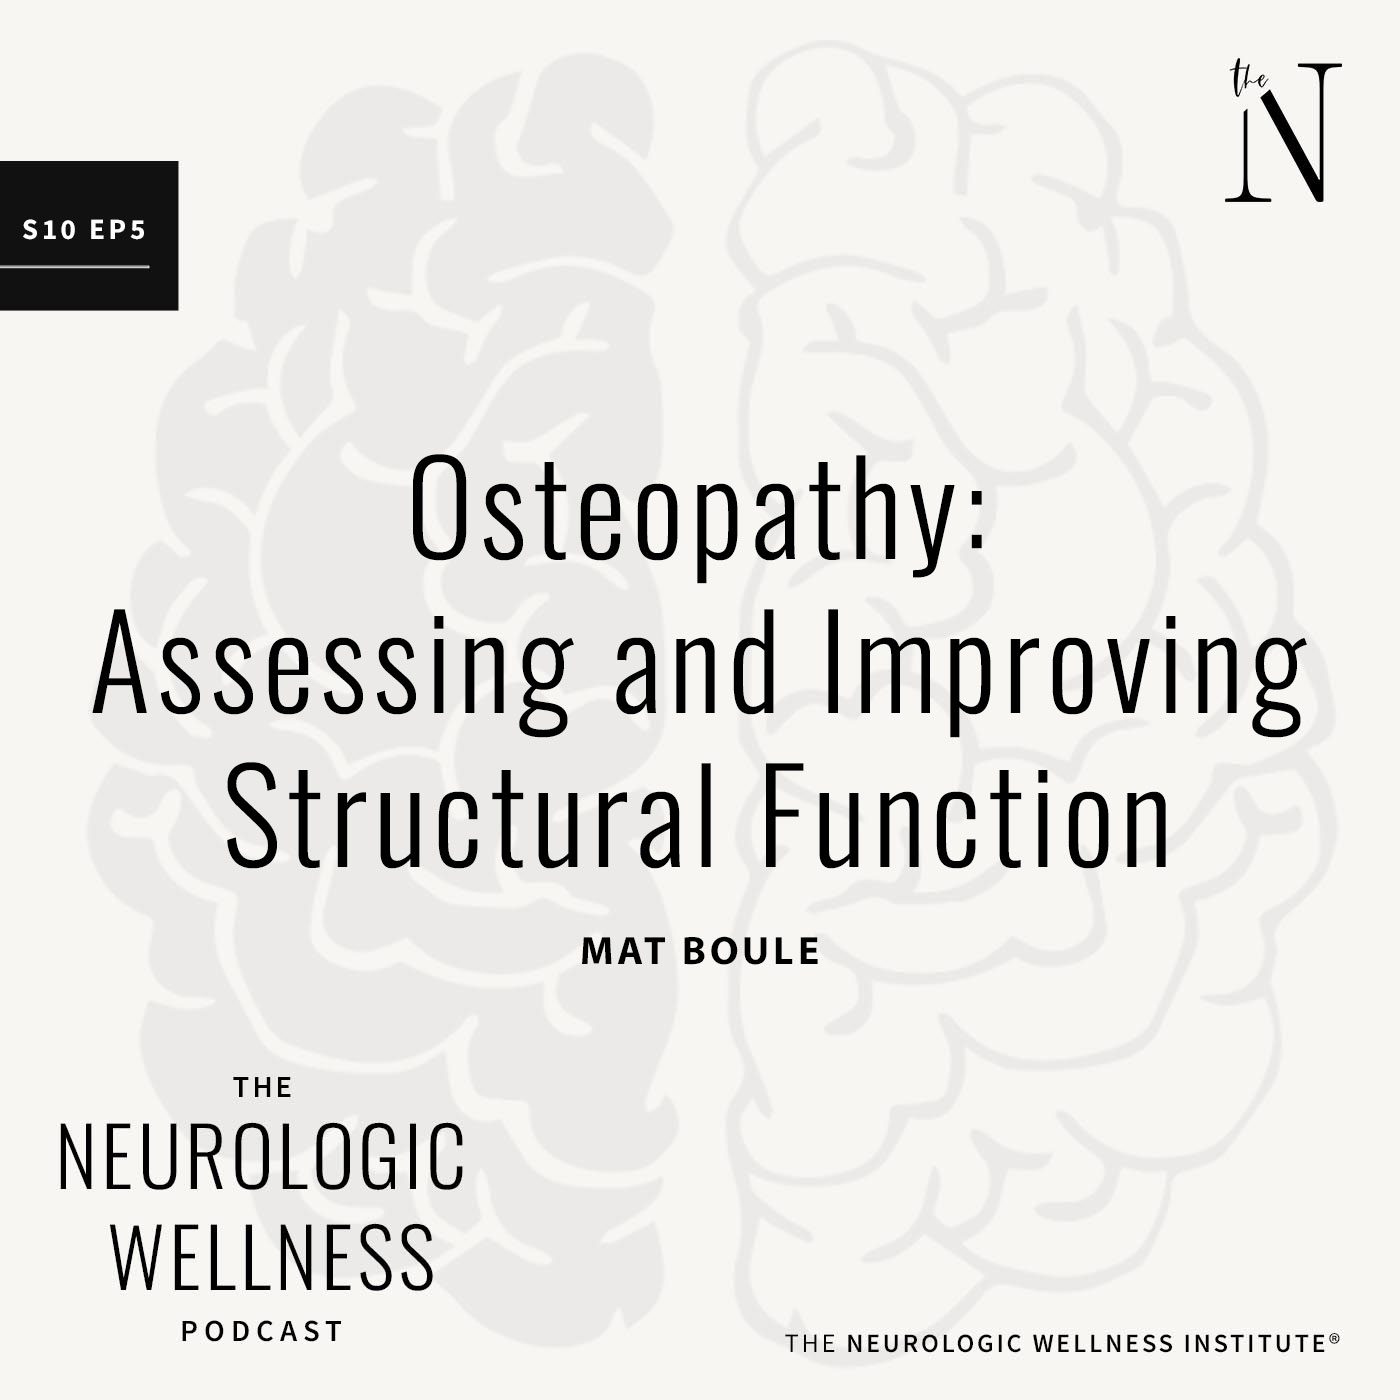 Osteopathy: Assessing and Improving Structural Function